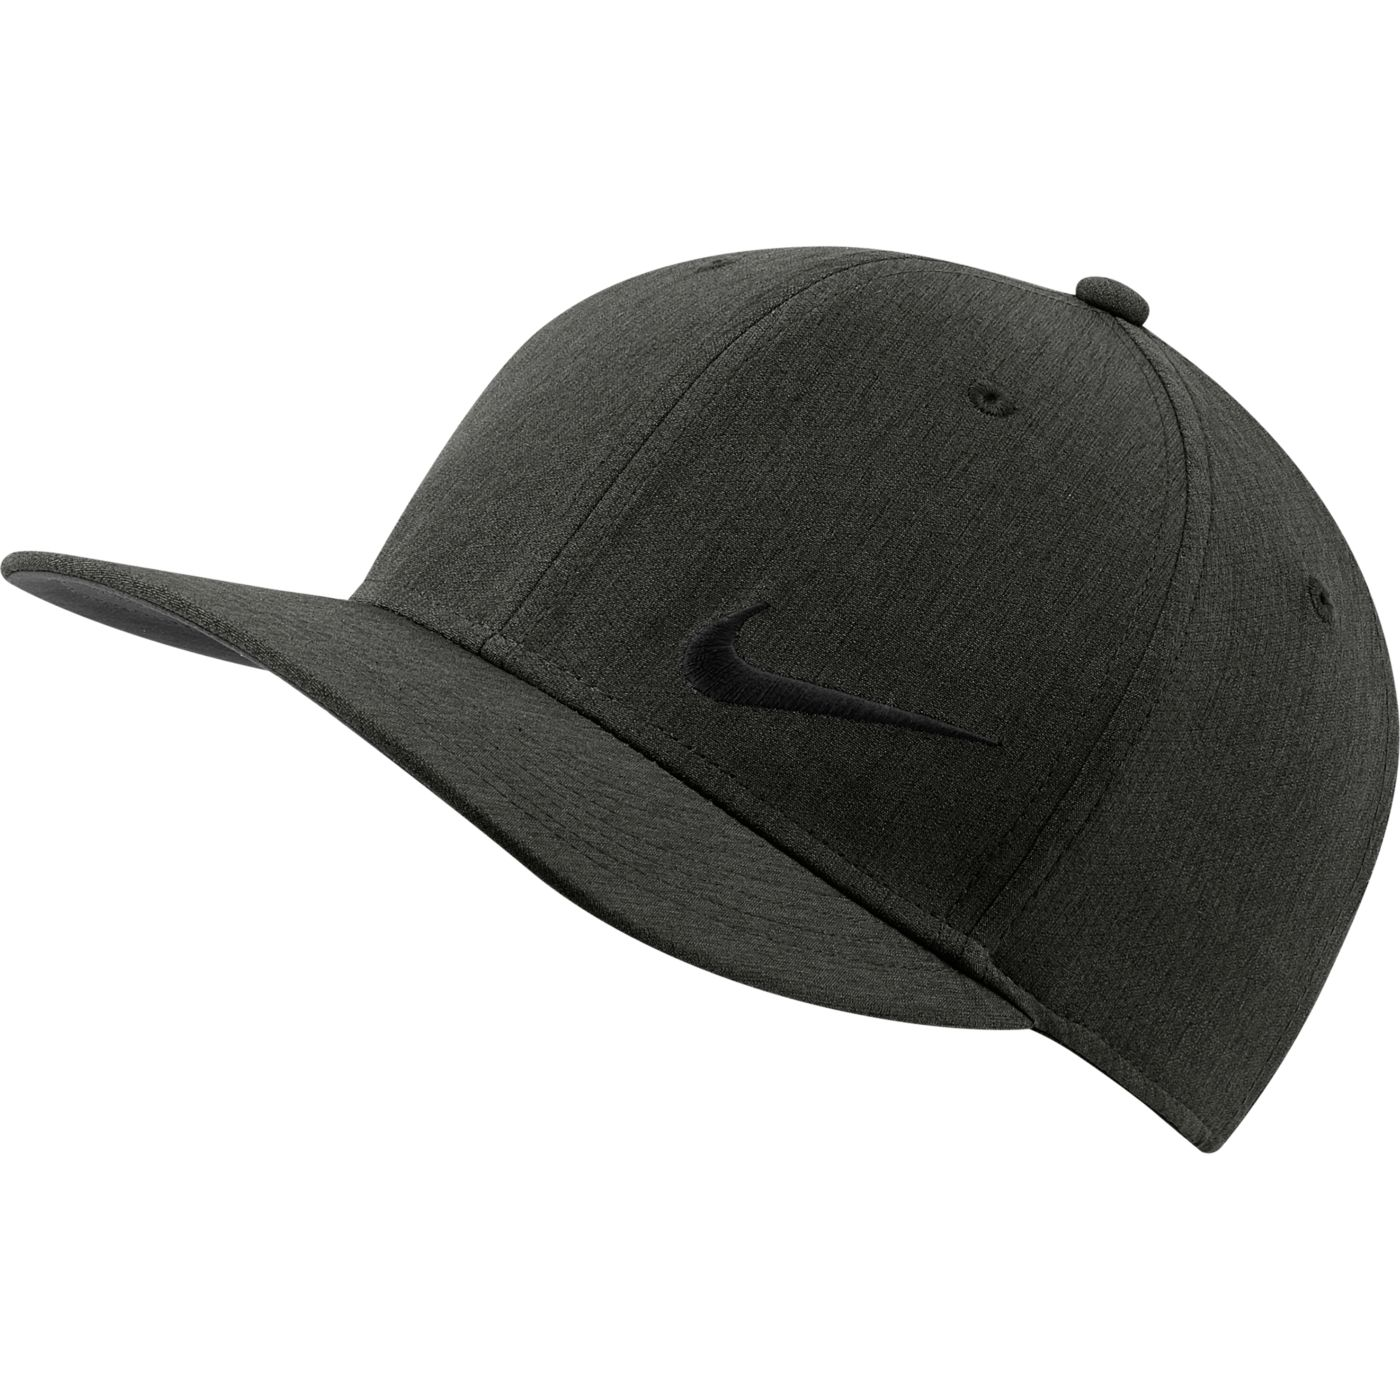 Nike Men's Classic99 Golf Hat